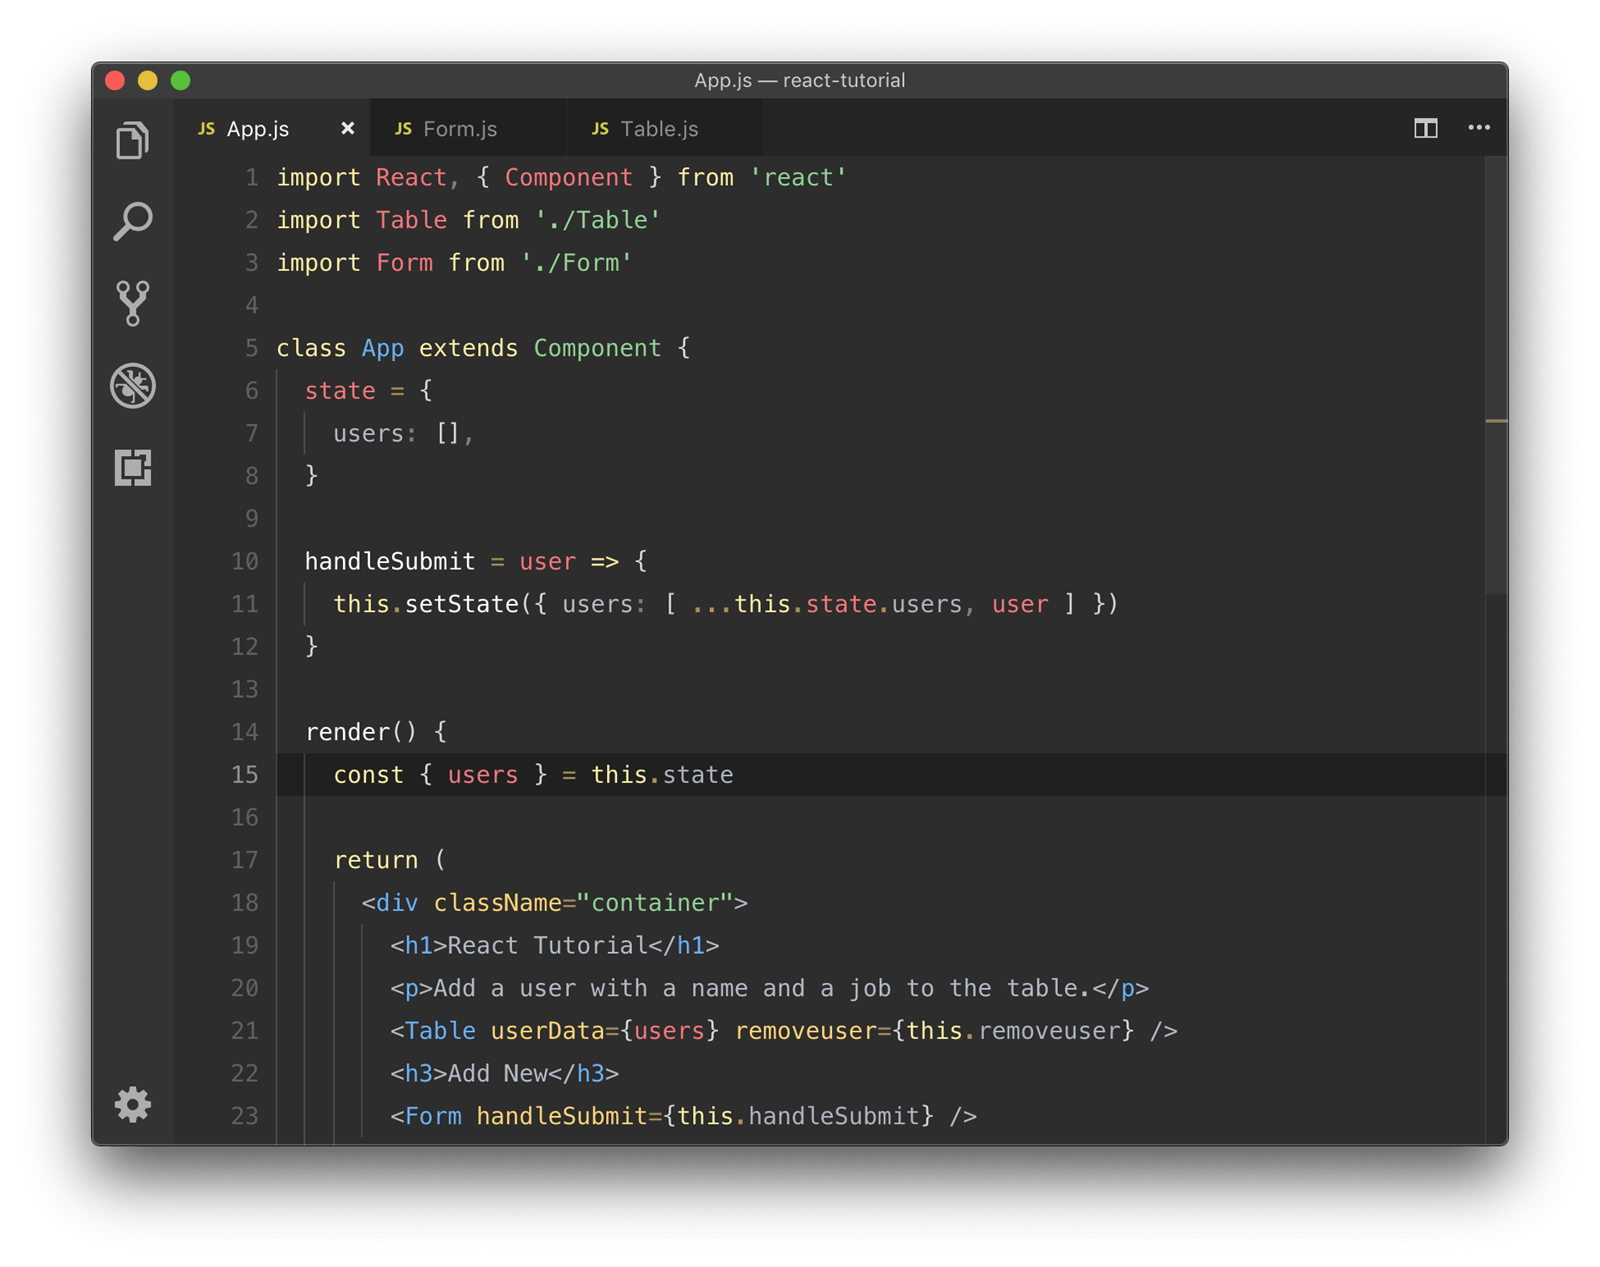 A code editor with a middle-dark grey background, and pastel-ish primary colors for the foreground